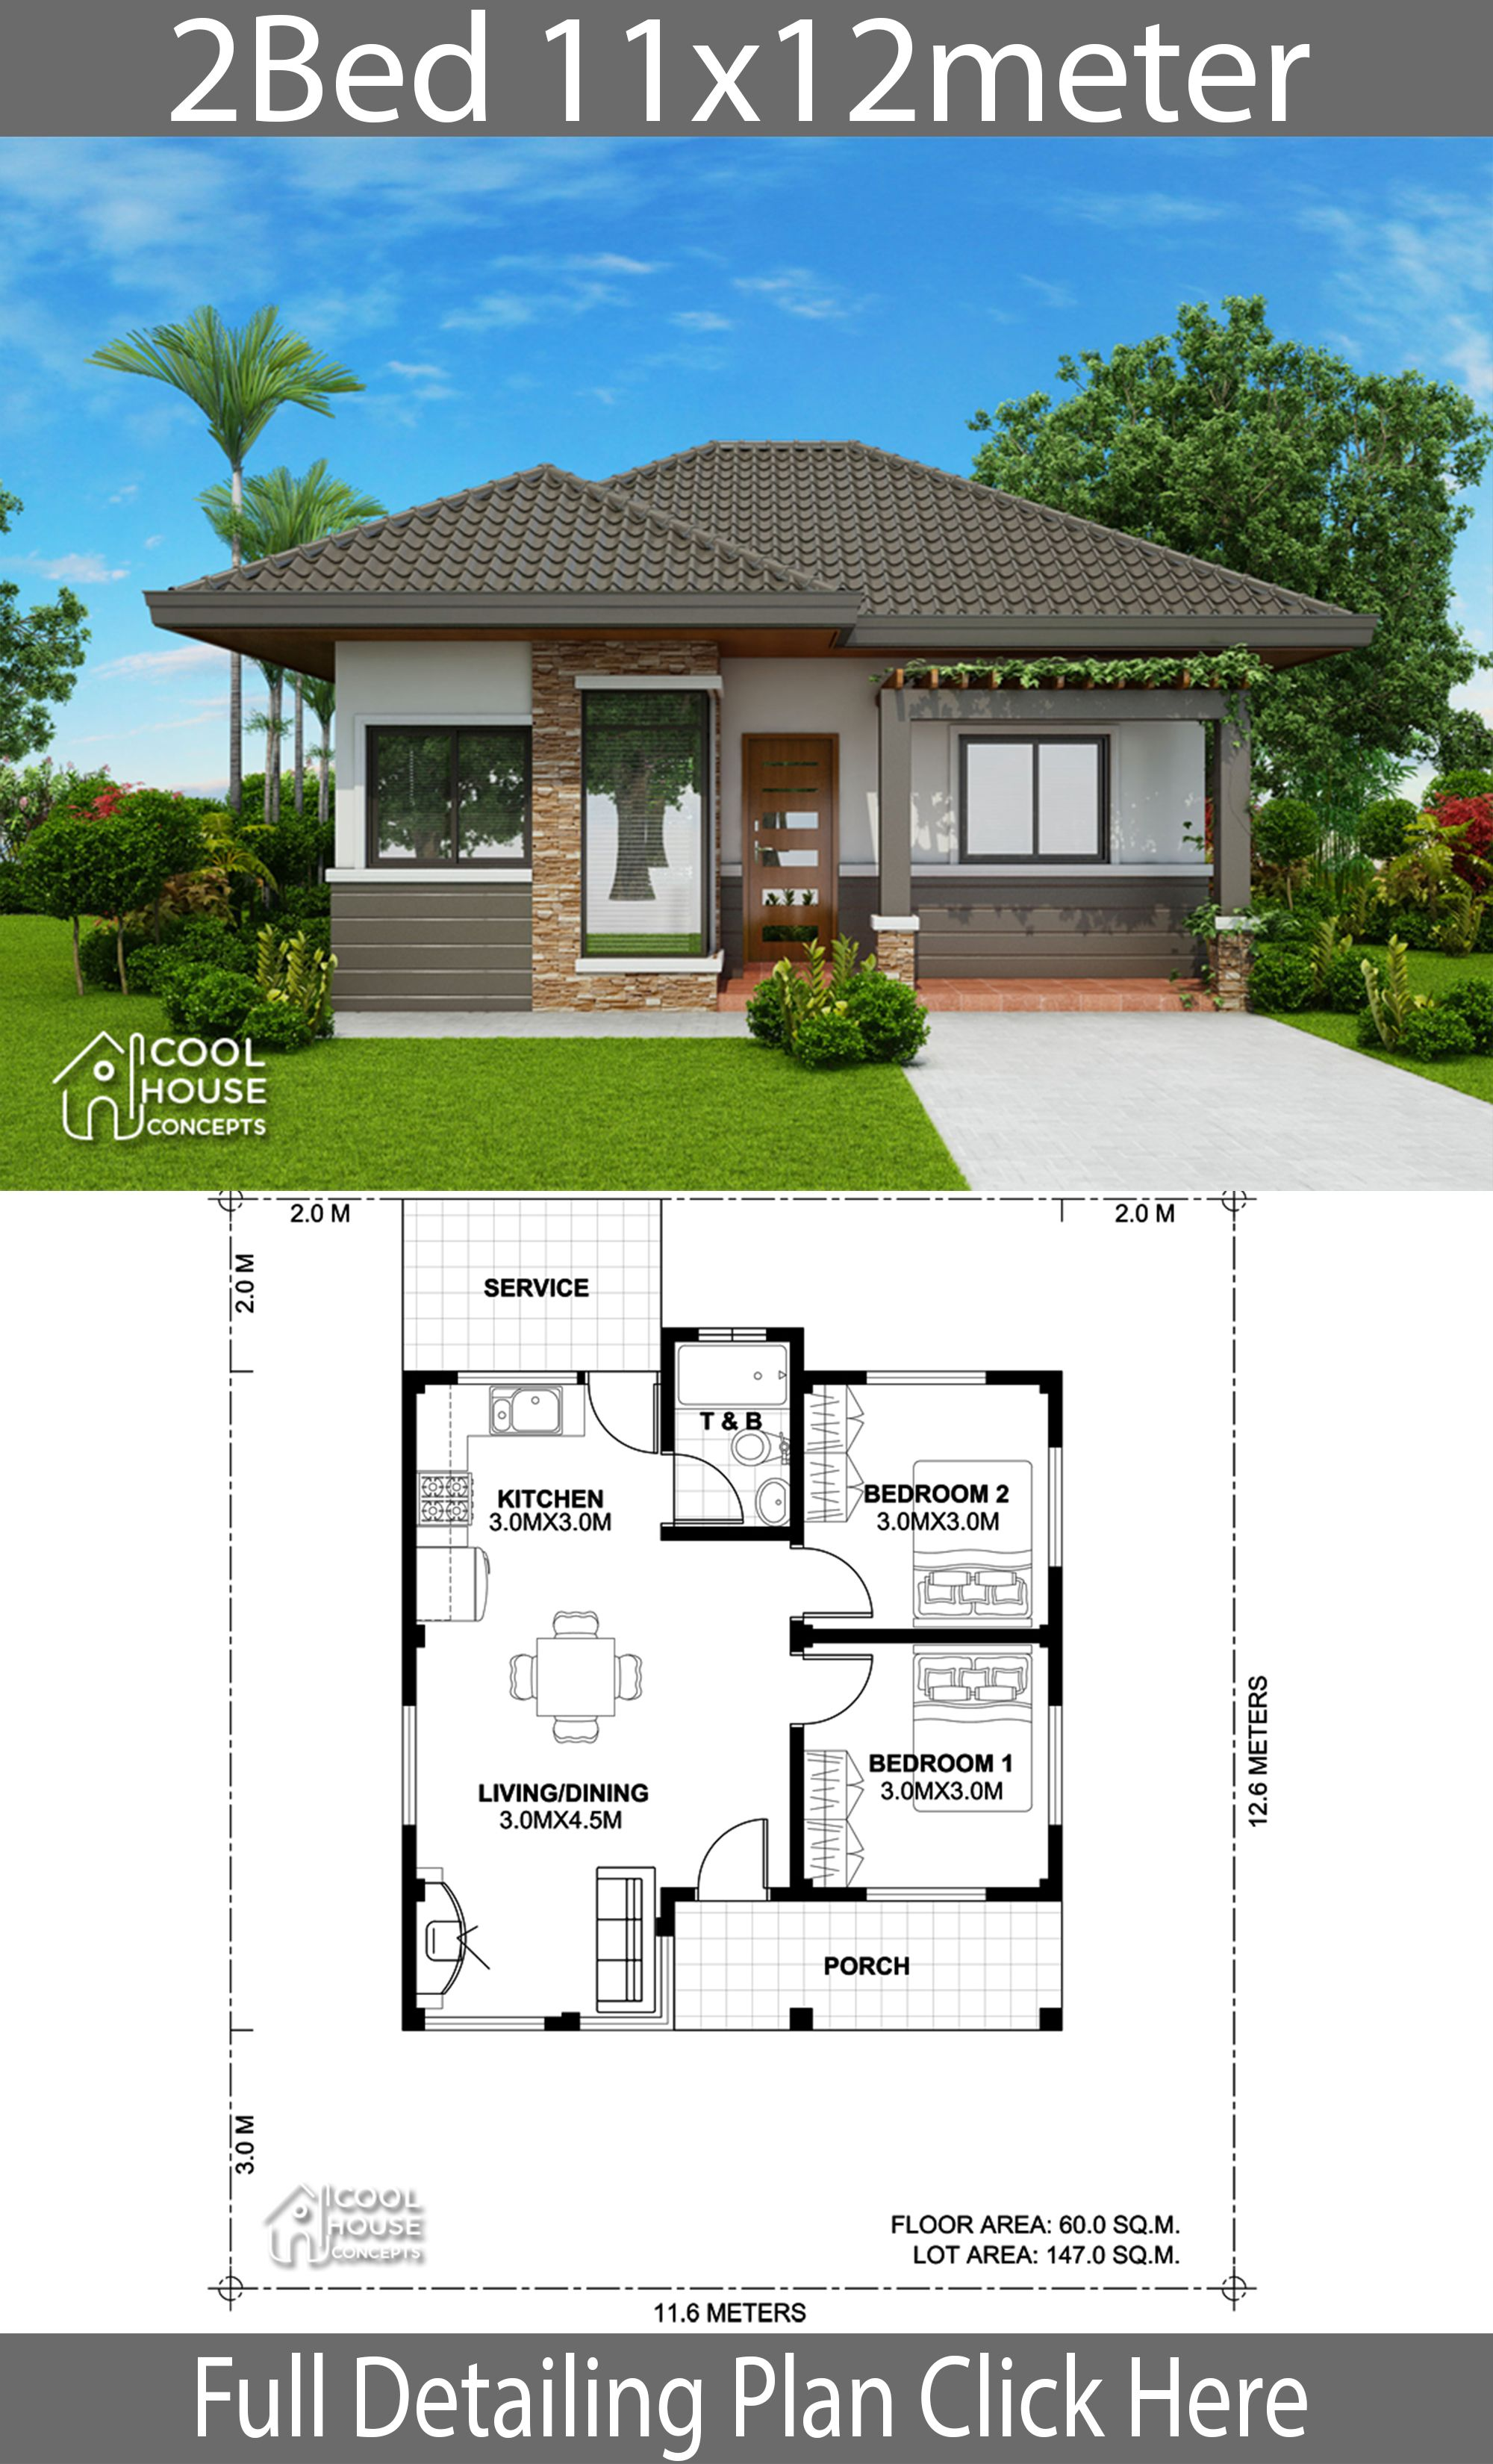 Pin By Mohammed Ali On Samphoas House Plan House Plan Gallery Bungalow House Plans House Design